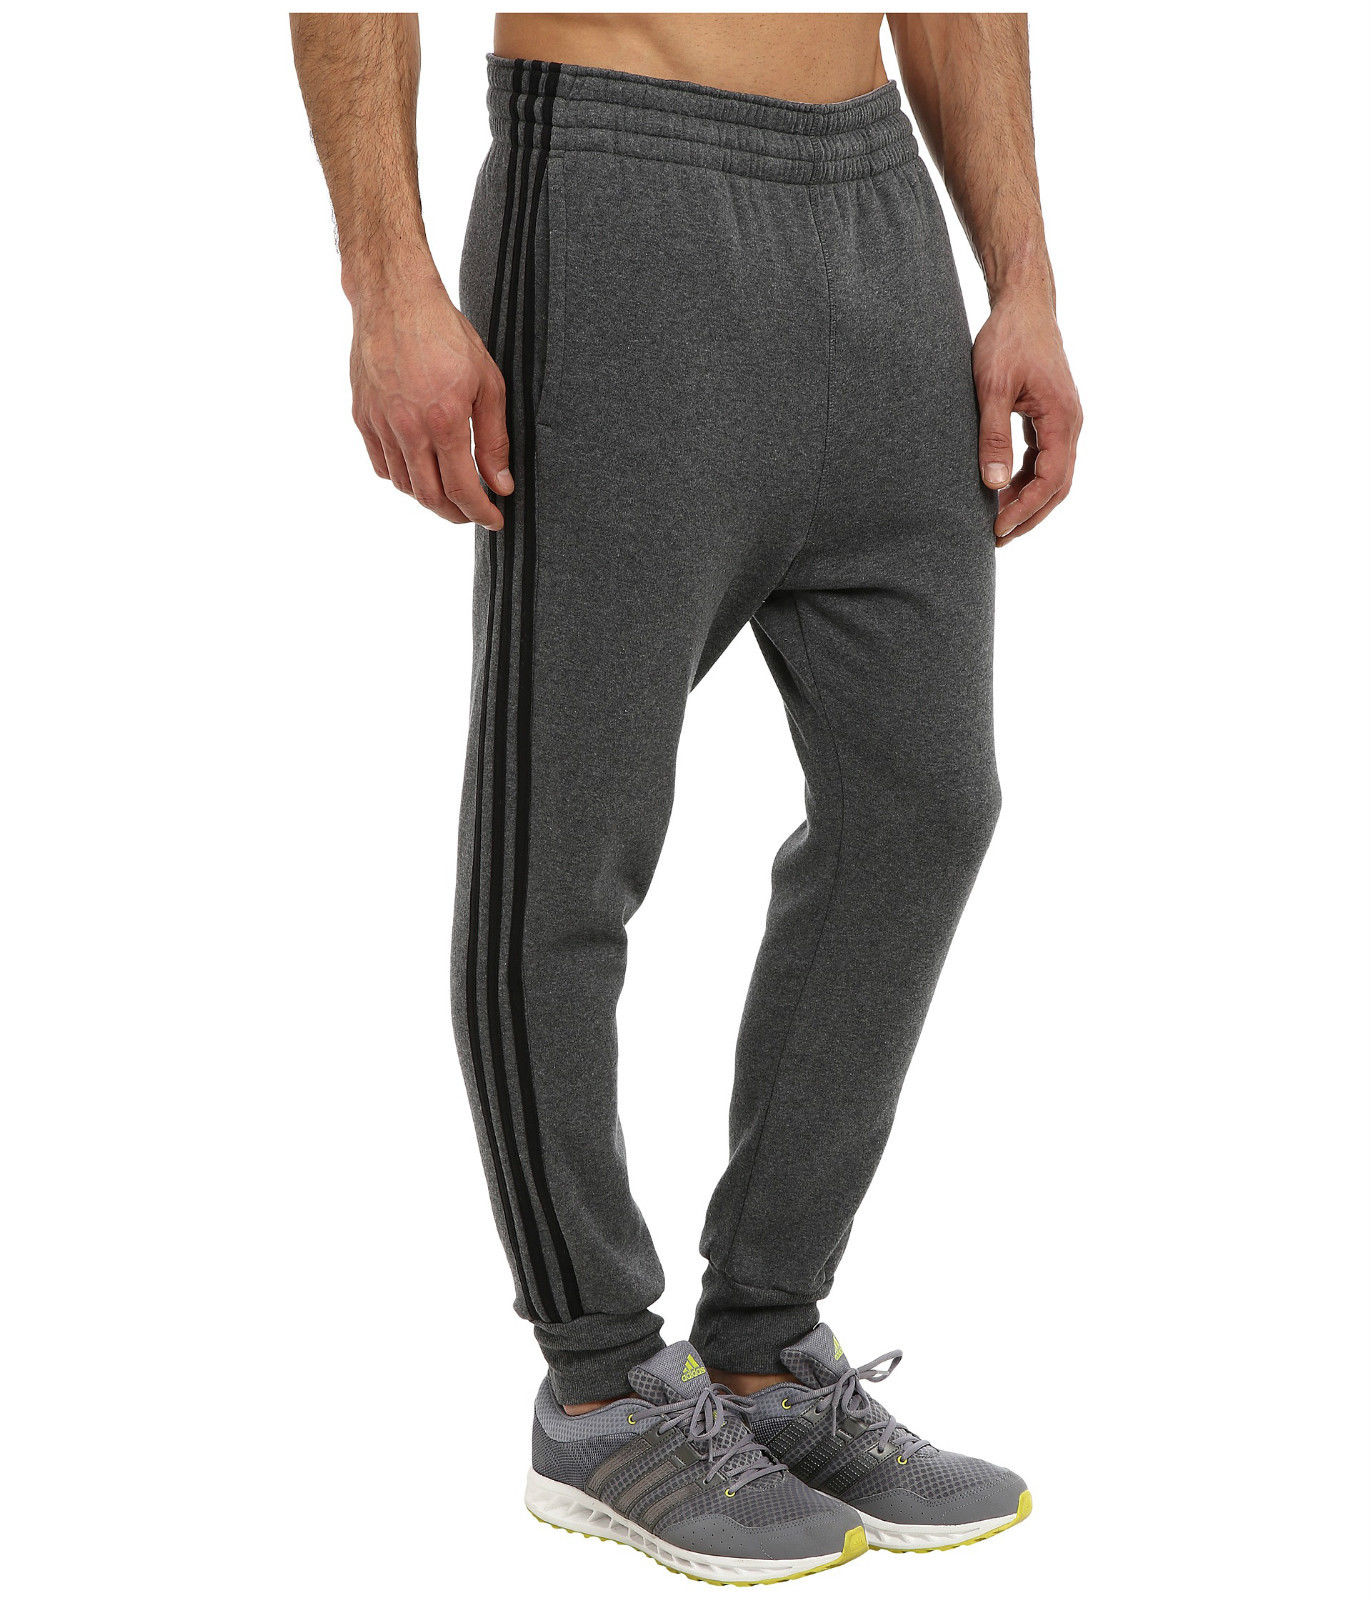 Buy low price, high quality men's slim sweatpants with worldwide shipping on multiformo.tk